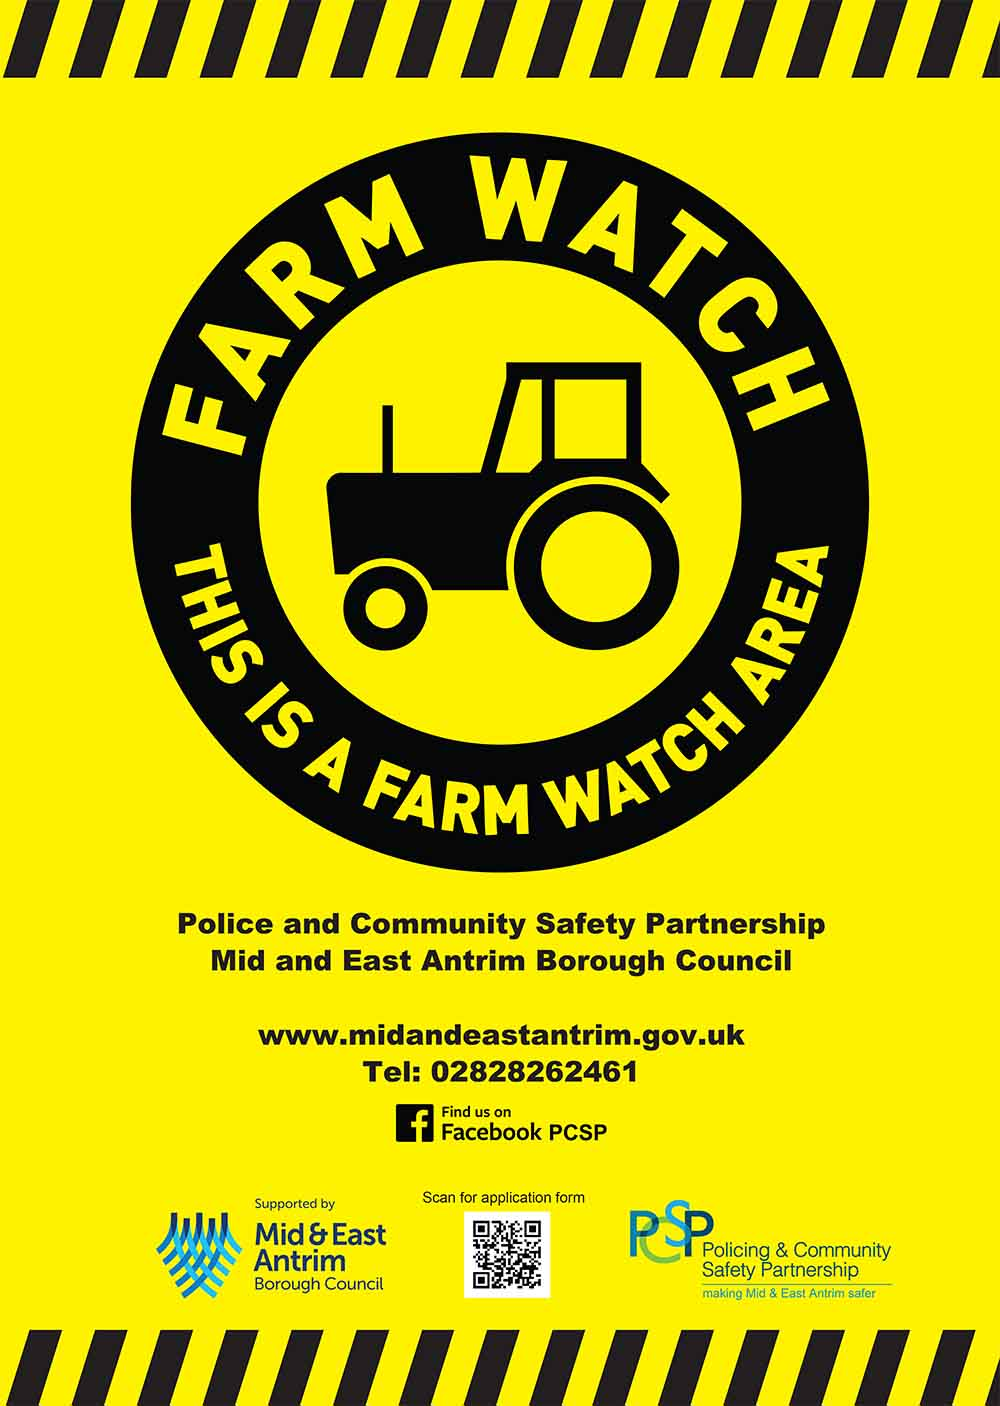 Farm Watch Poster image